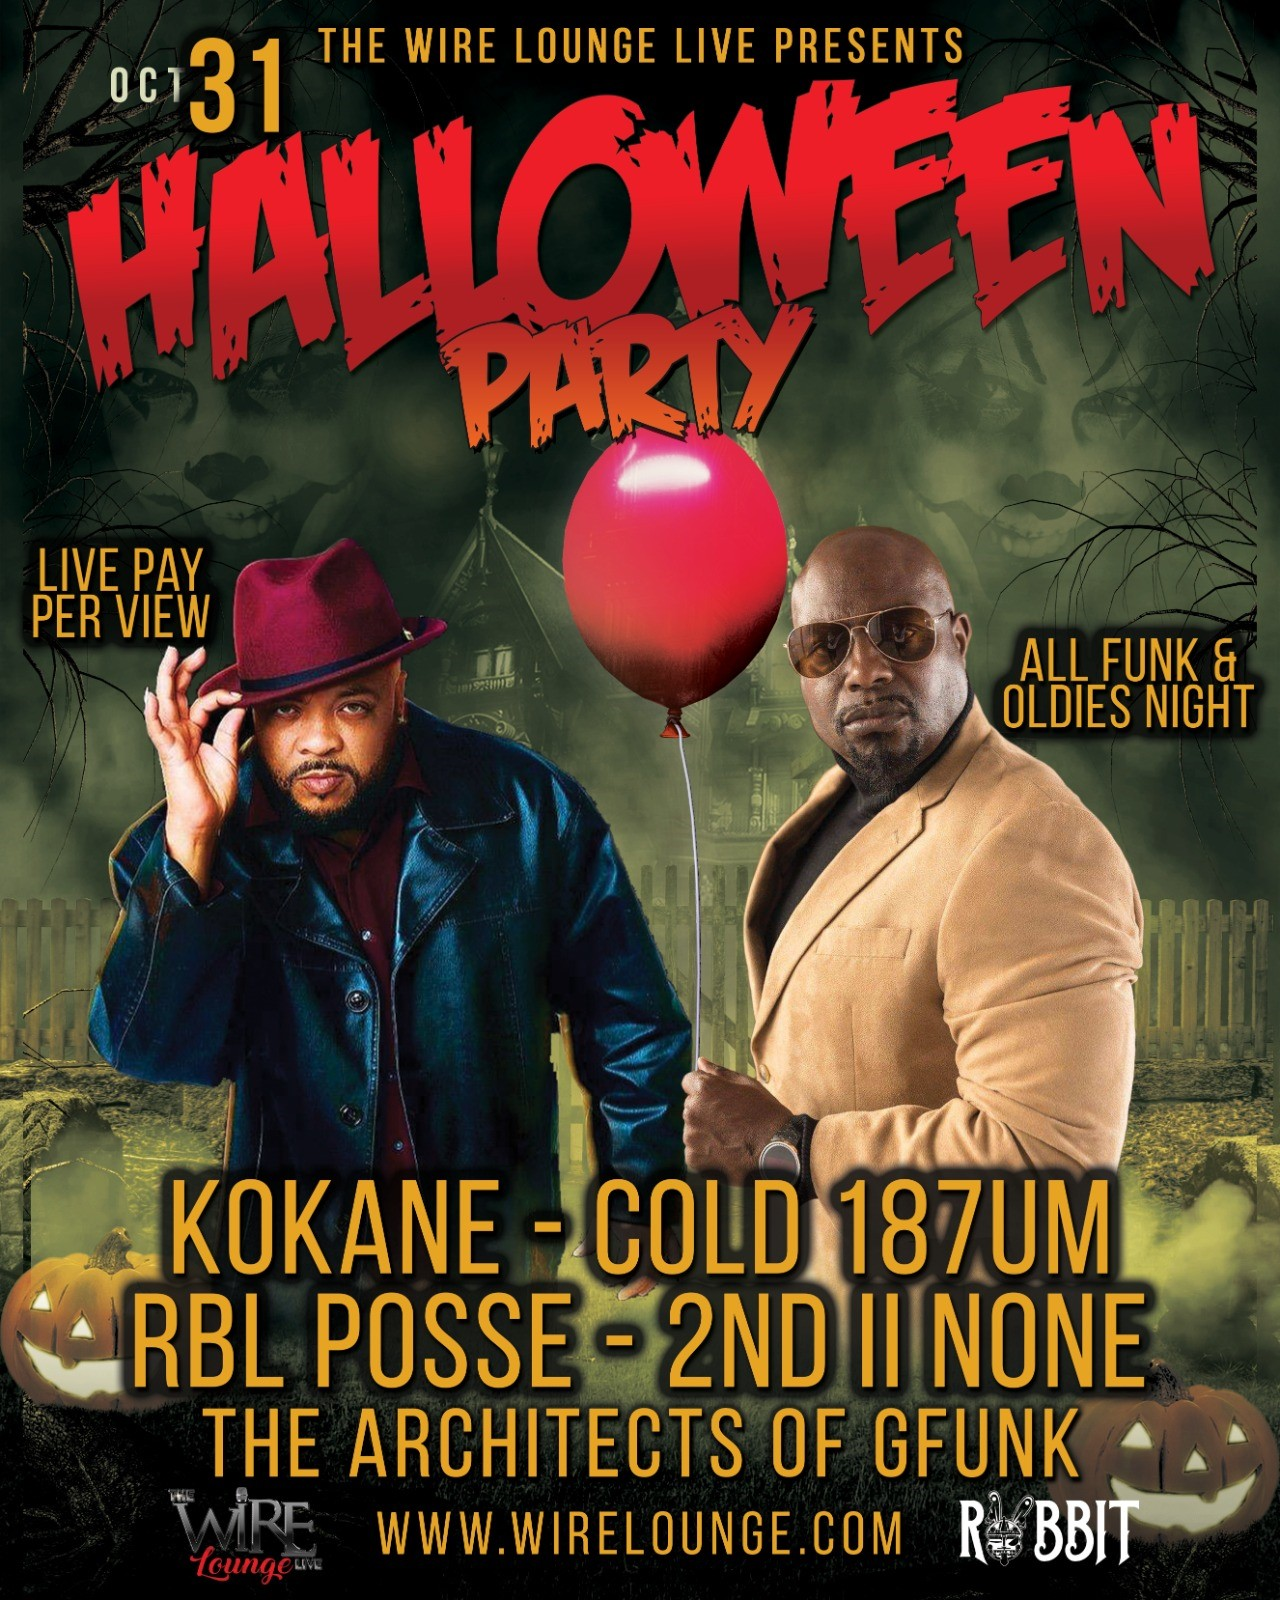 HALLOWEEN PARTY  on Oct 31, 22:00@The Wire Lounge Live - Buy tickets and Get information on The Wire Entertainment